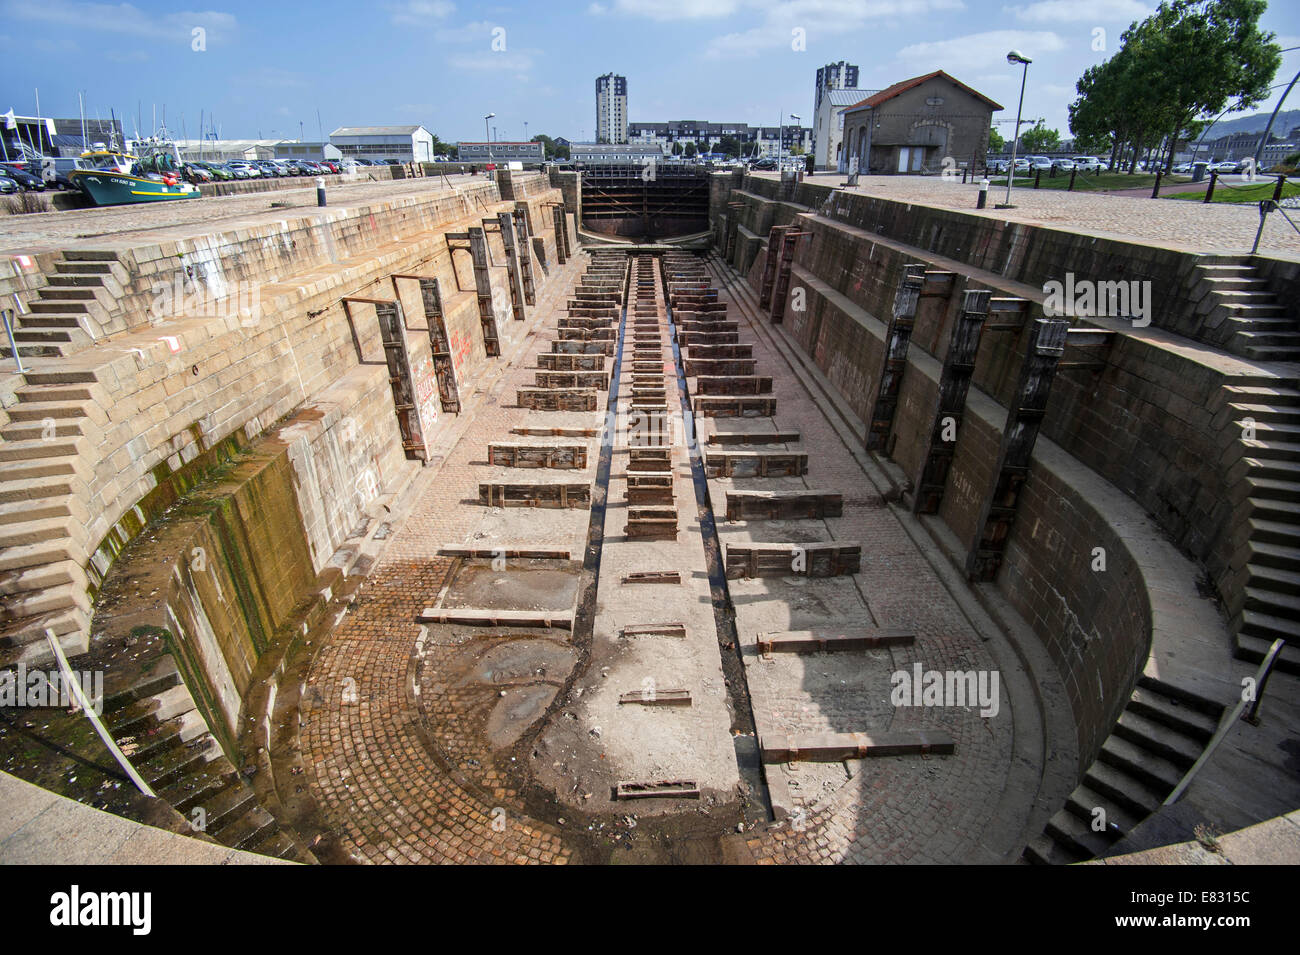 Empty dry dock in the port of Cherbourg, Lower Normandy, France - Stock Image